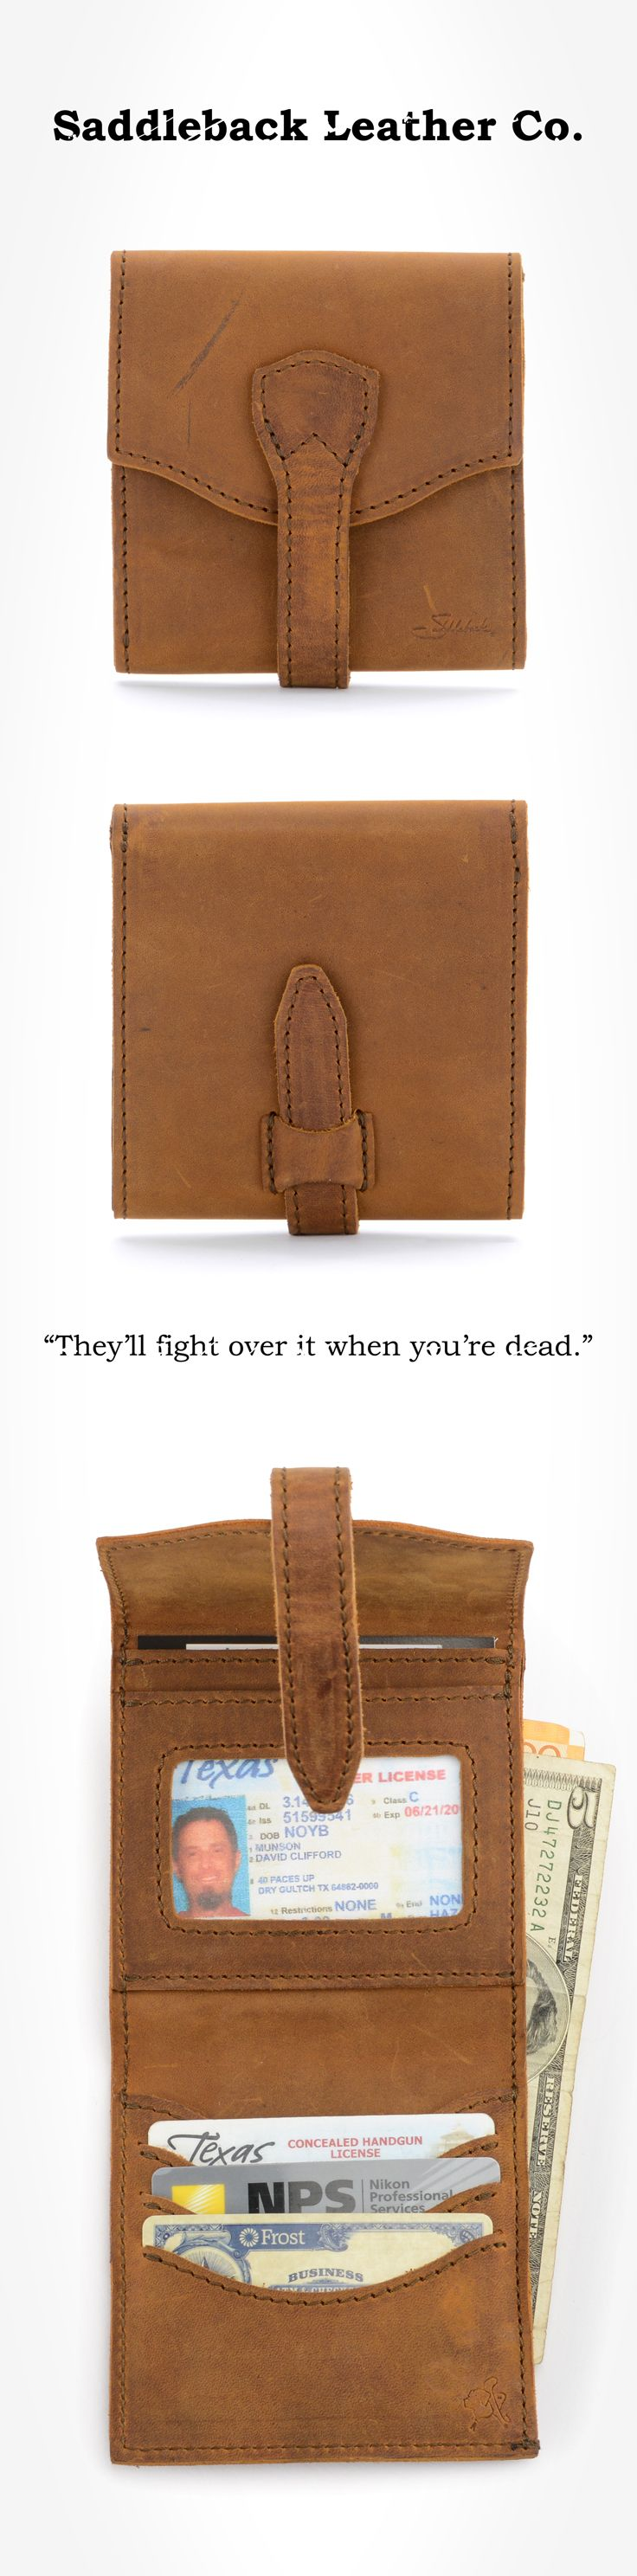 The Saddleback Leather Trifold Wallet in Tobacco | 100 Year Warranty | $68.00